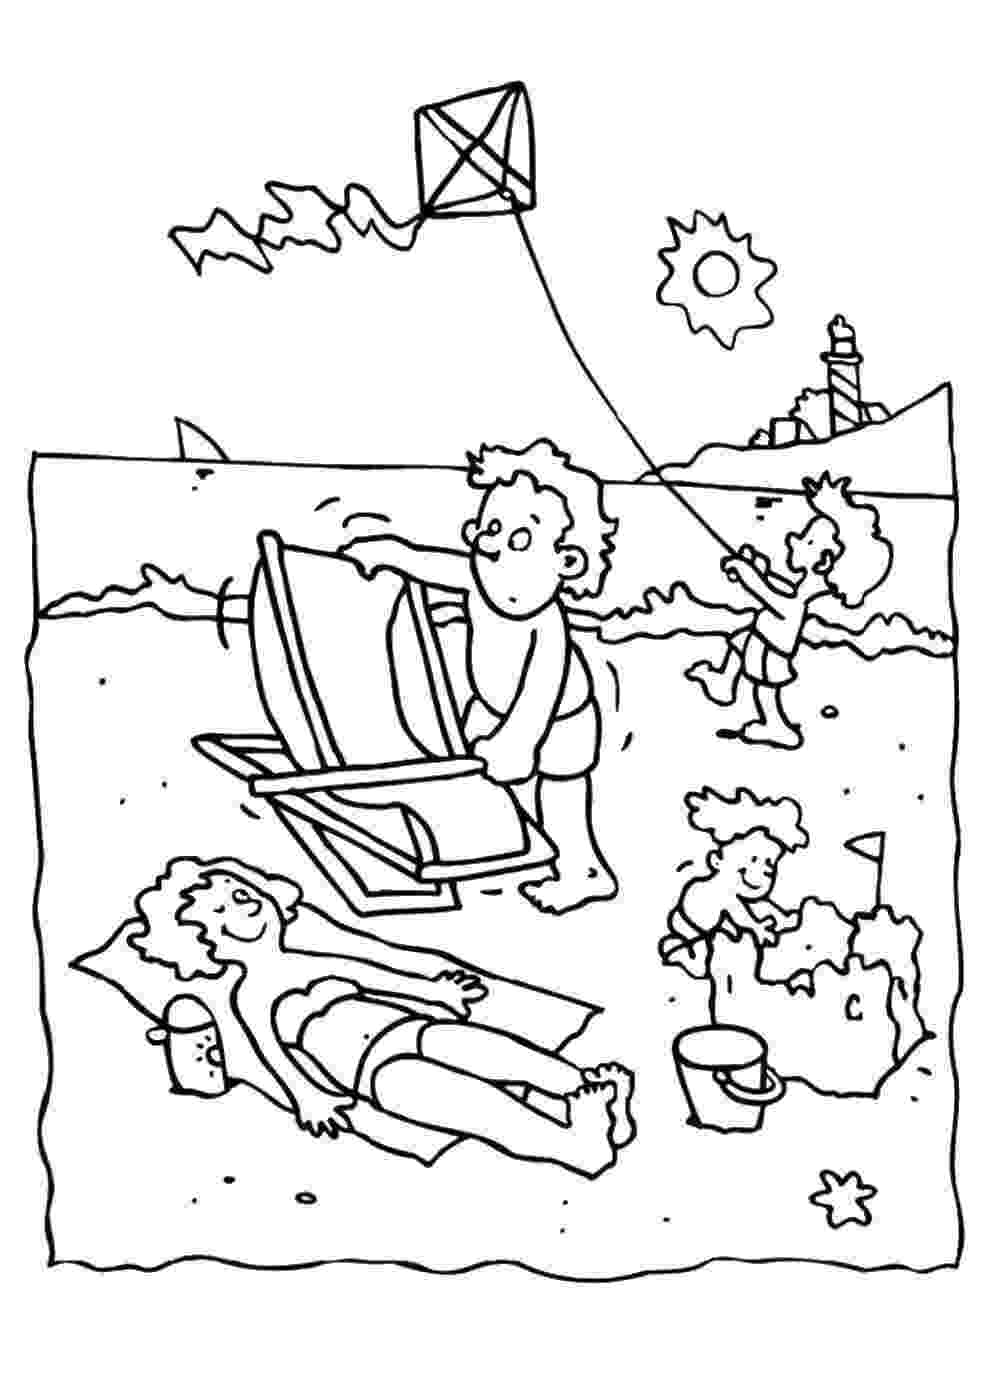 beach coloring pages 25 free printable beach coloring pages coloring beach pages